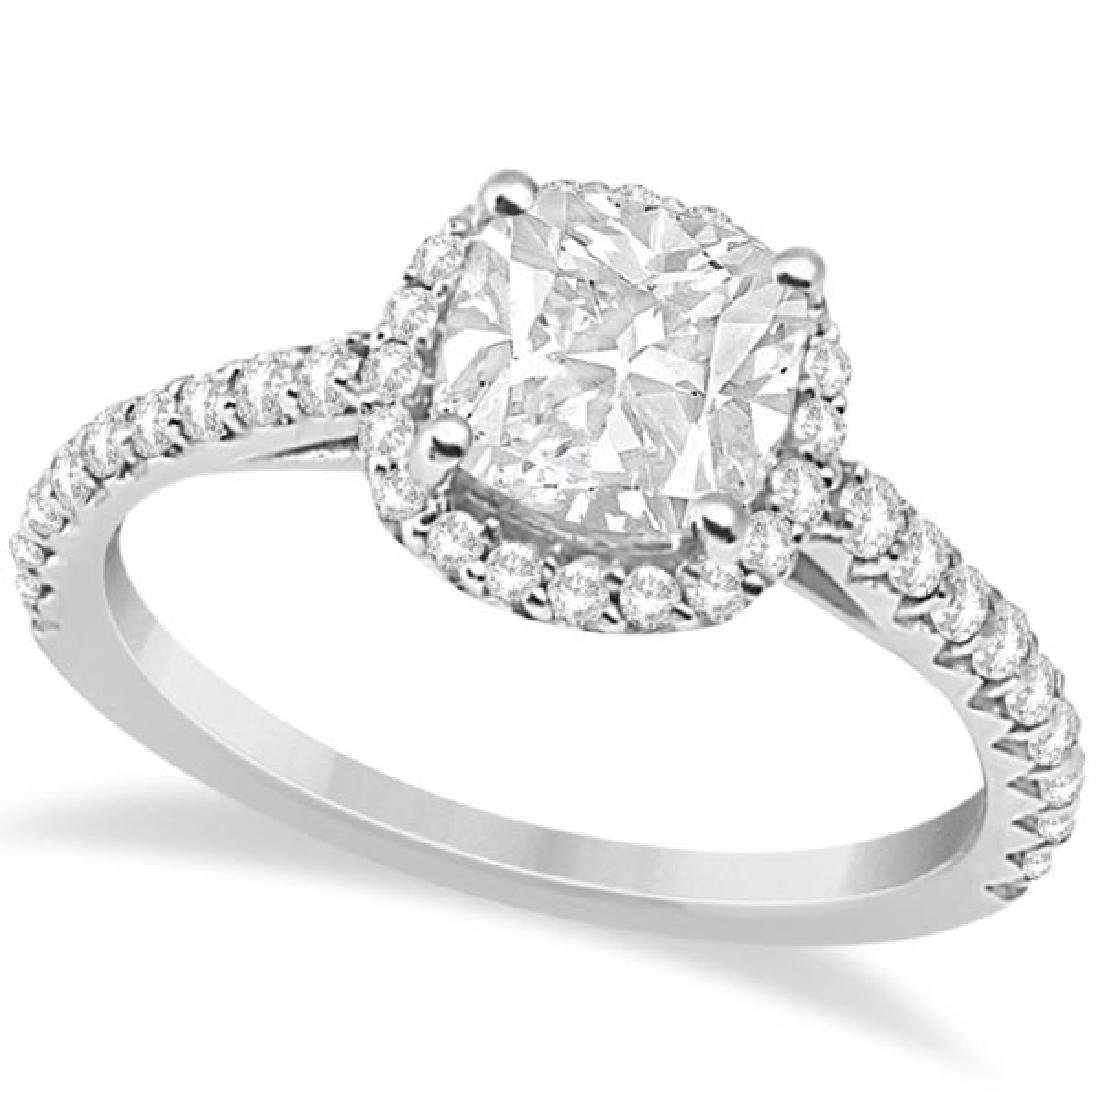 Halo Design Cushion Cut Diamond Engagement Ring 14K Whi